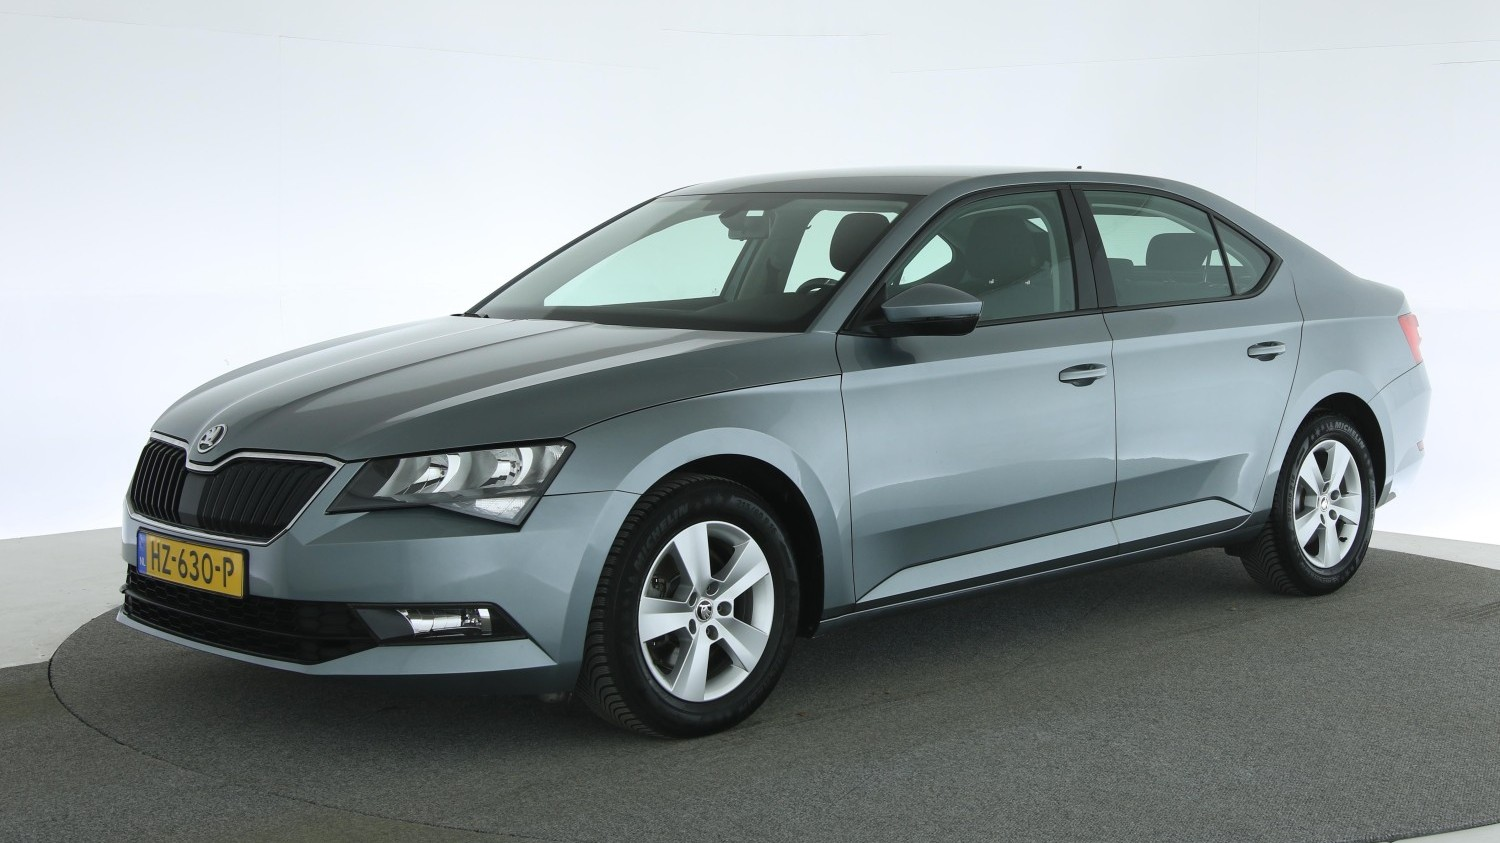 Skoda Superb Hatchback 2016 HZ-630-P 1